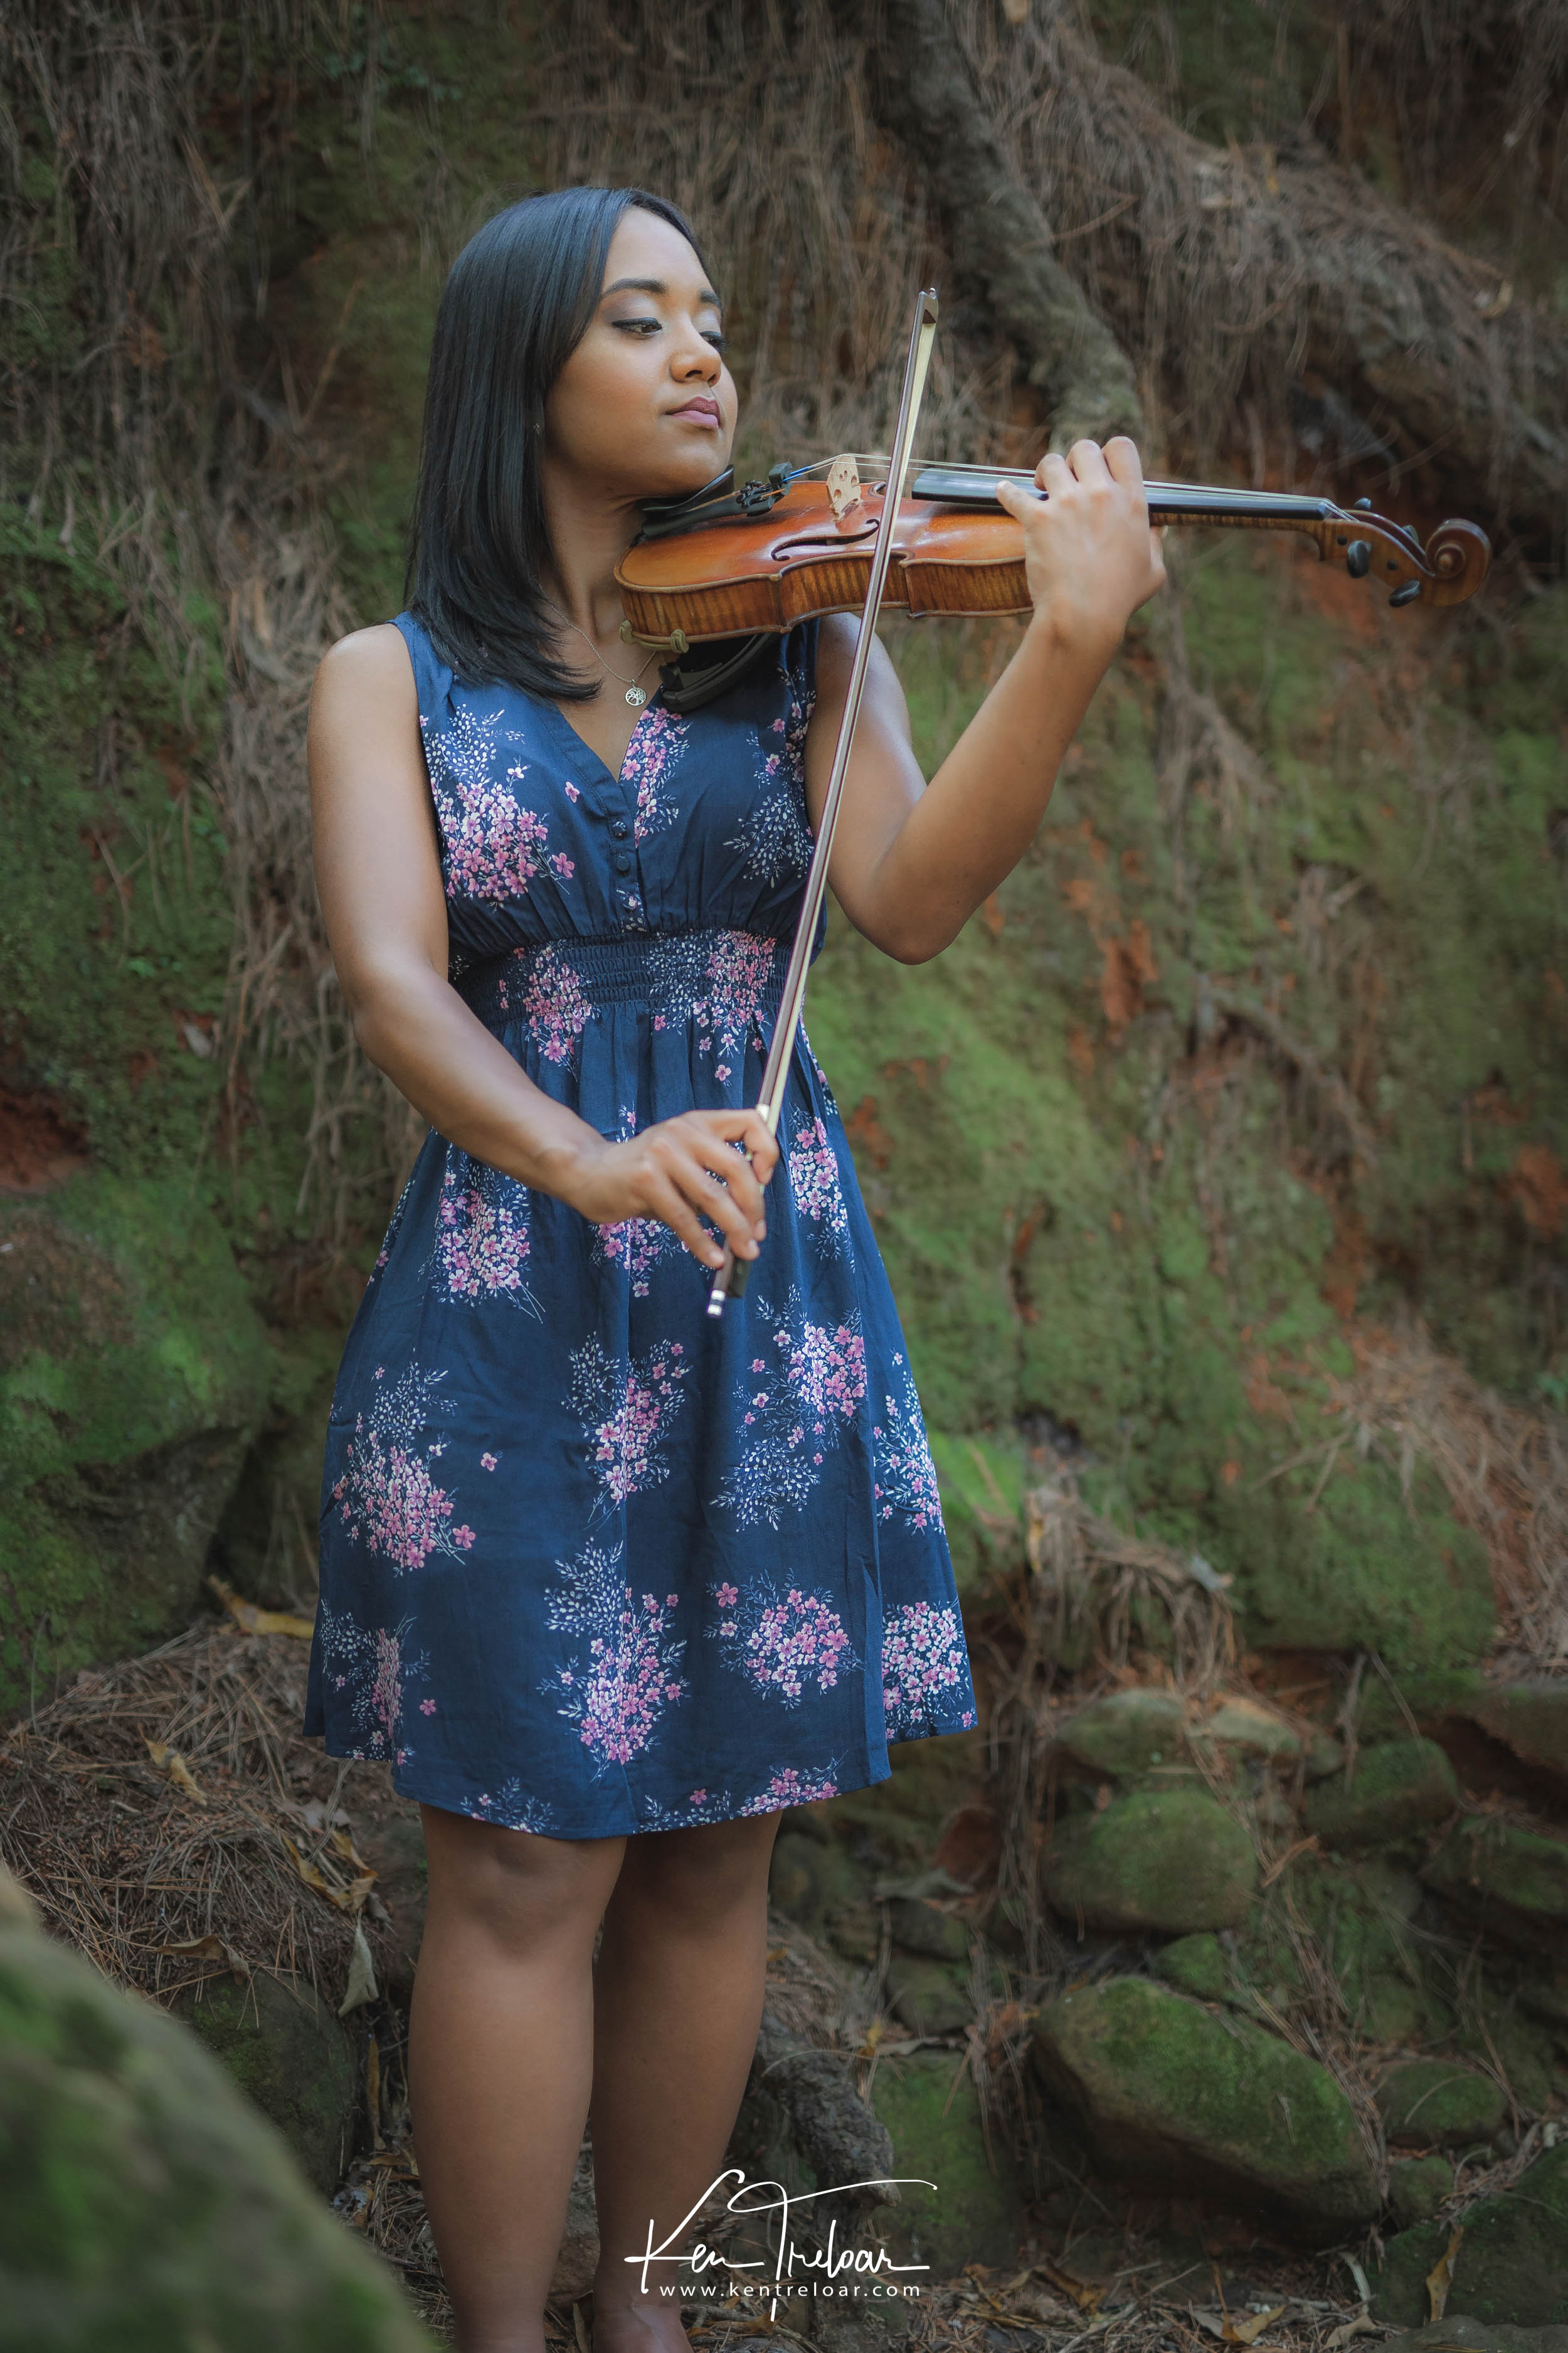 Ken Treloar Photography - Dec 2018 - Violin Woodland Forest Natural Light Portrait Photography - Cape Town-13.jpg